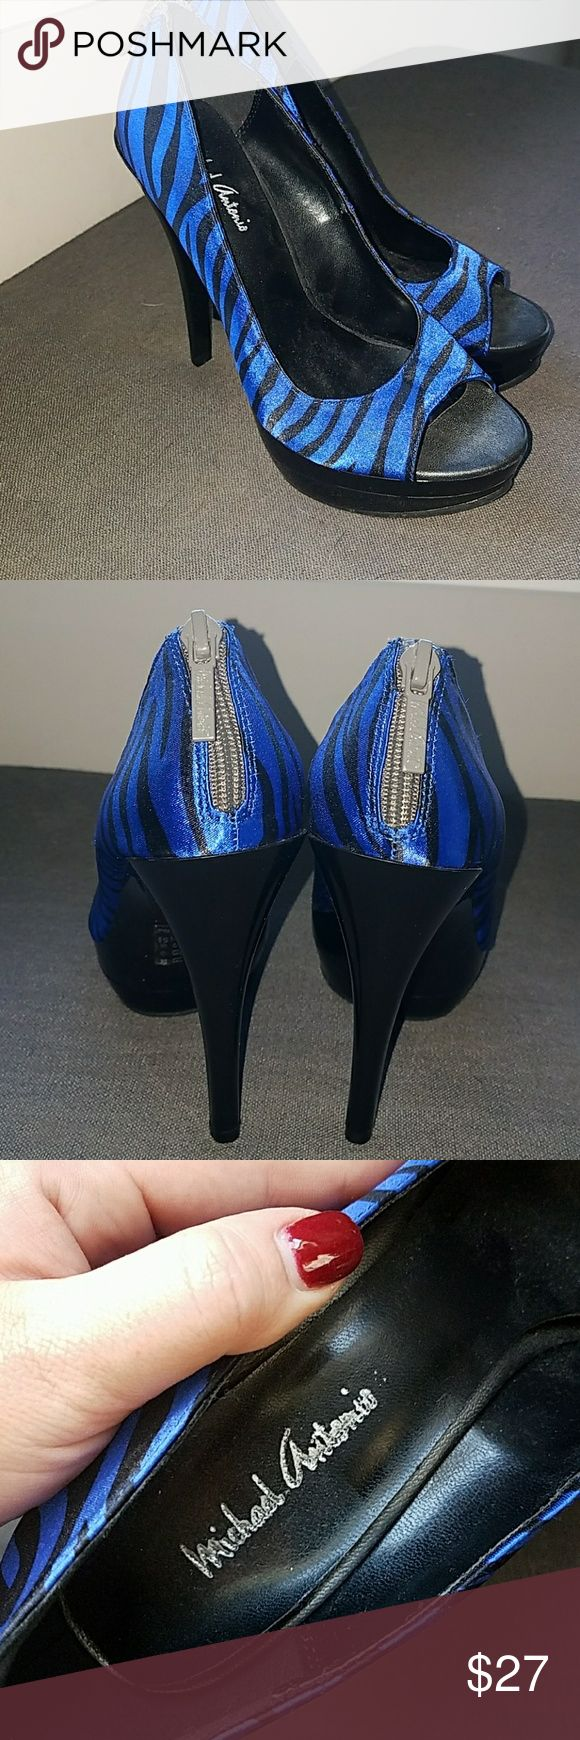 NEW Michael Antonio Heels Brand new never worn. Blue and Black zebra heels w zipper detail on back Michael Antonio Shoes Heels